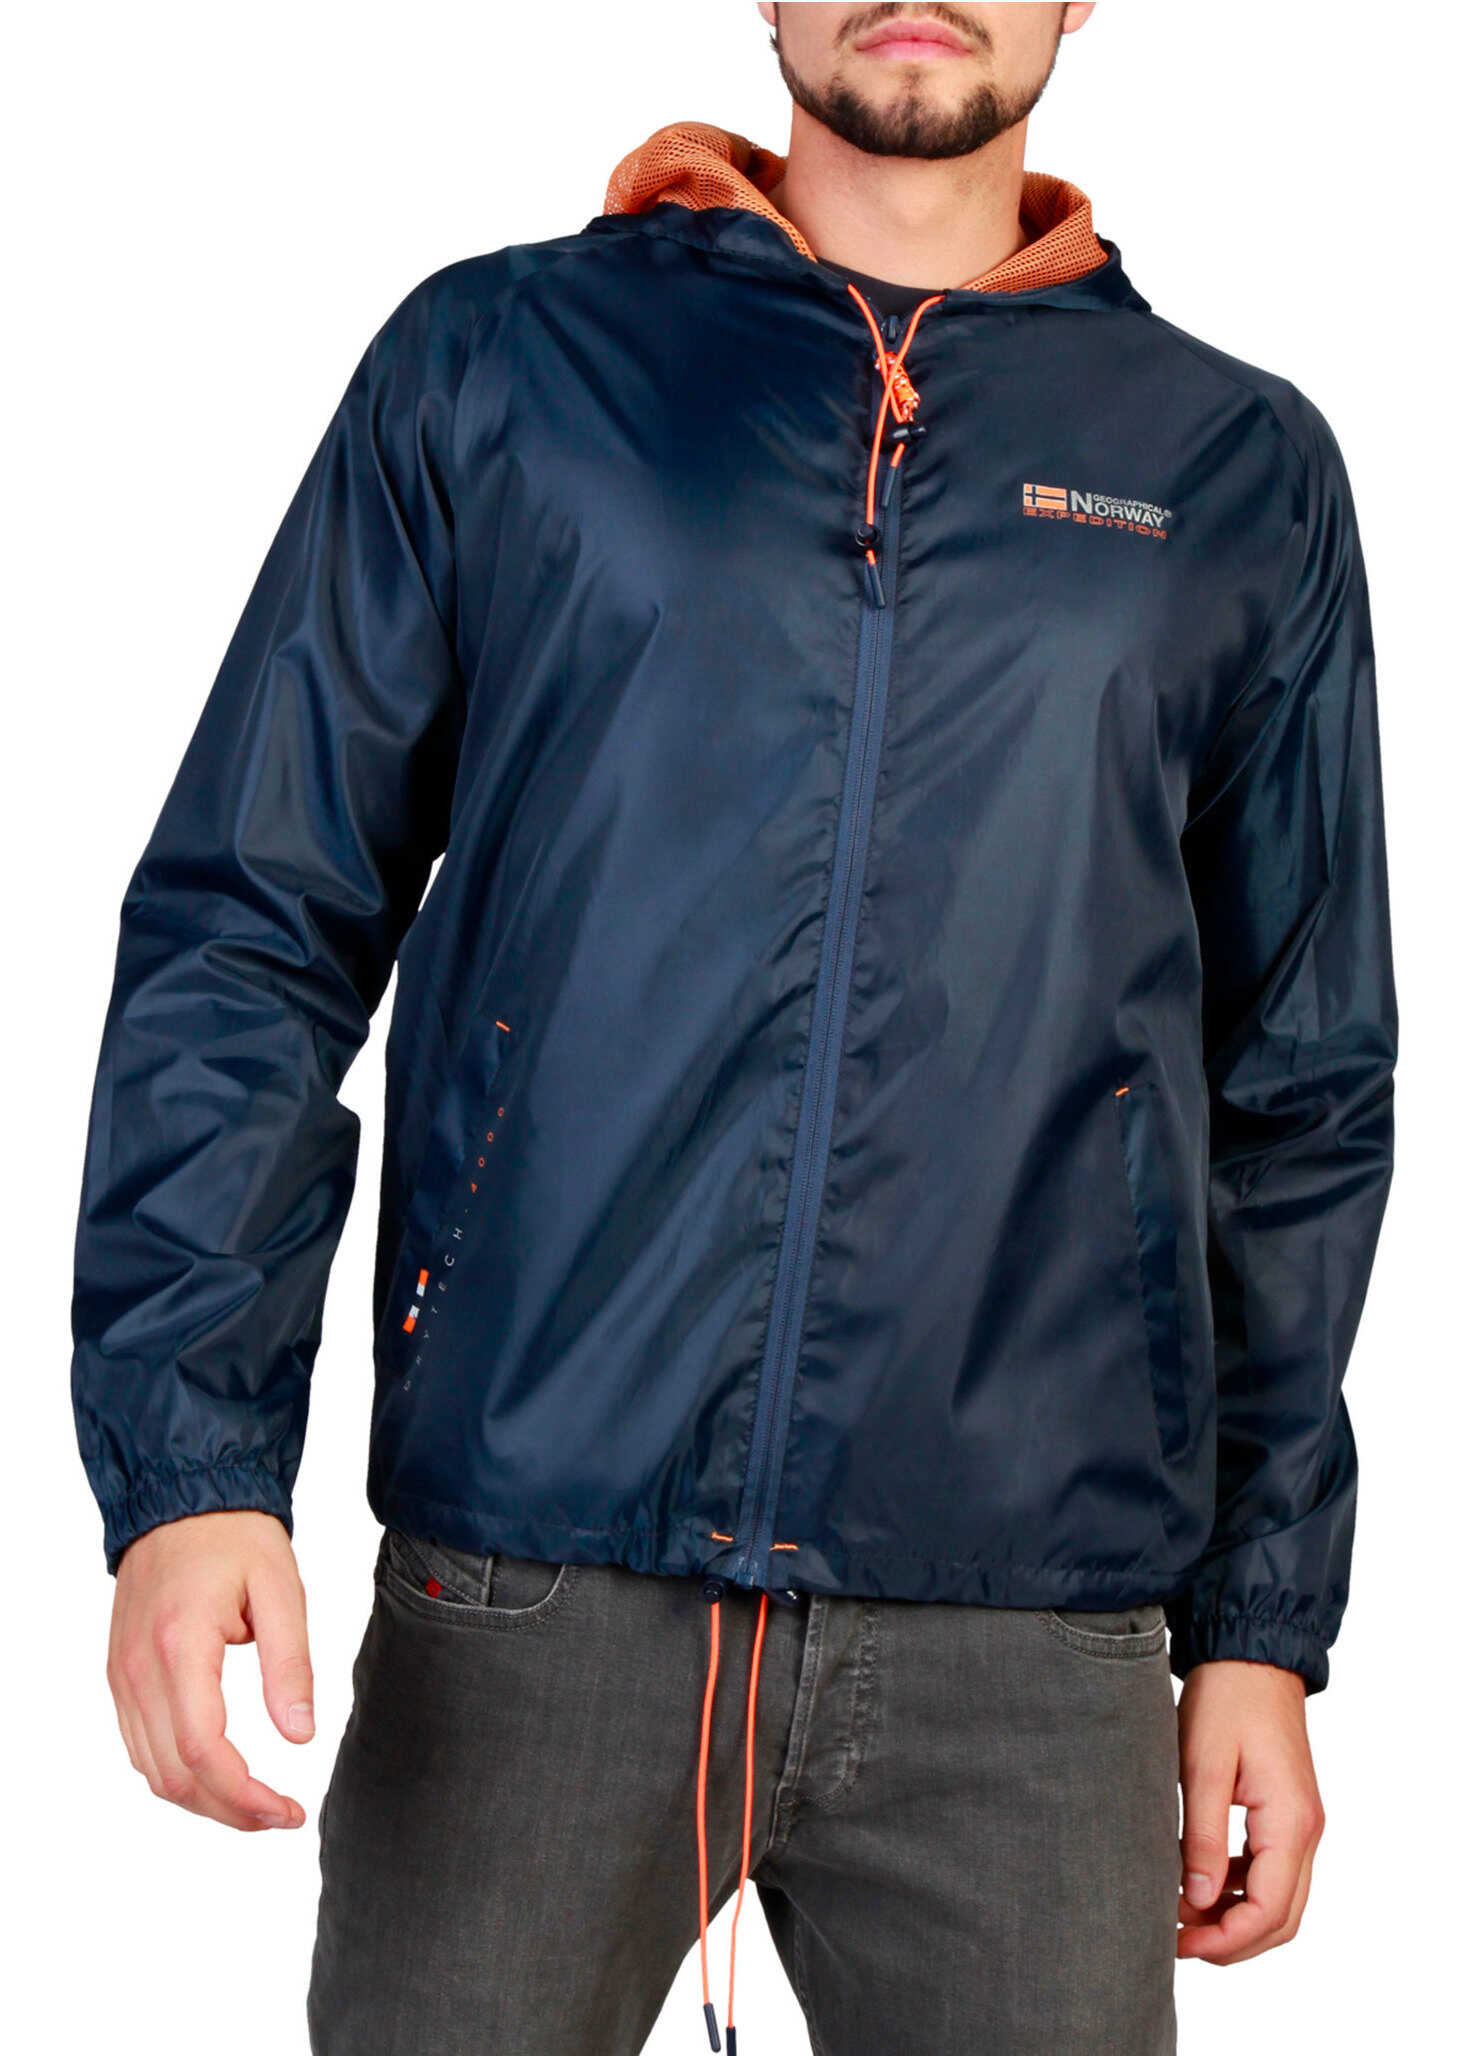 Geographical Norway Boat_Man Blue